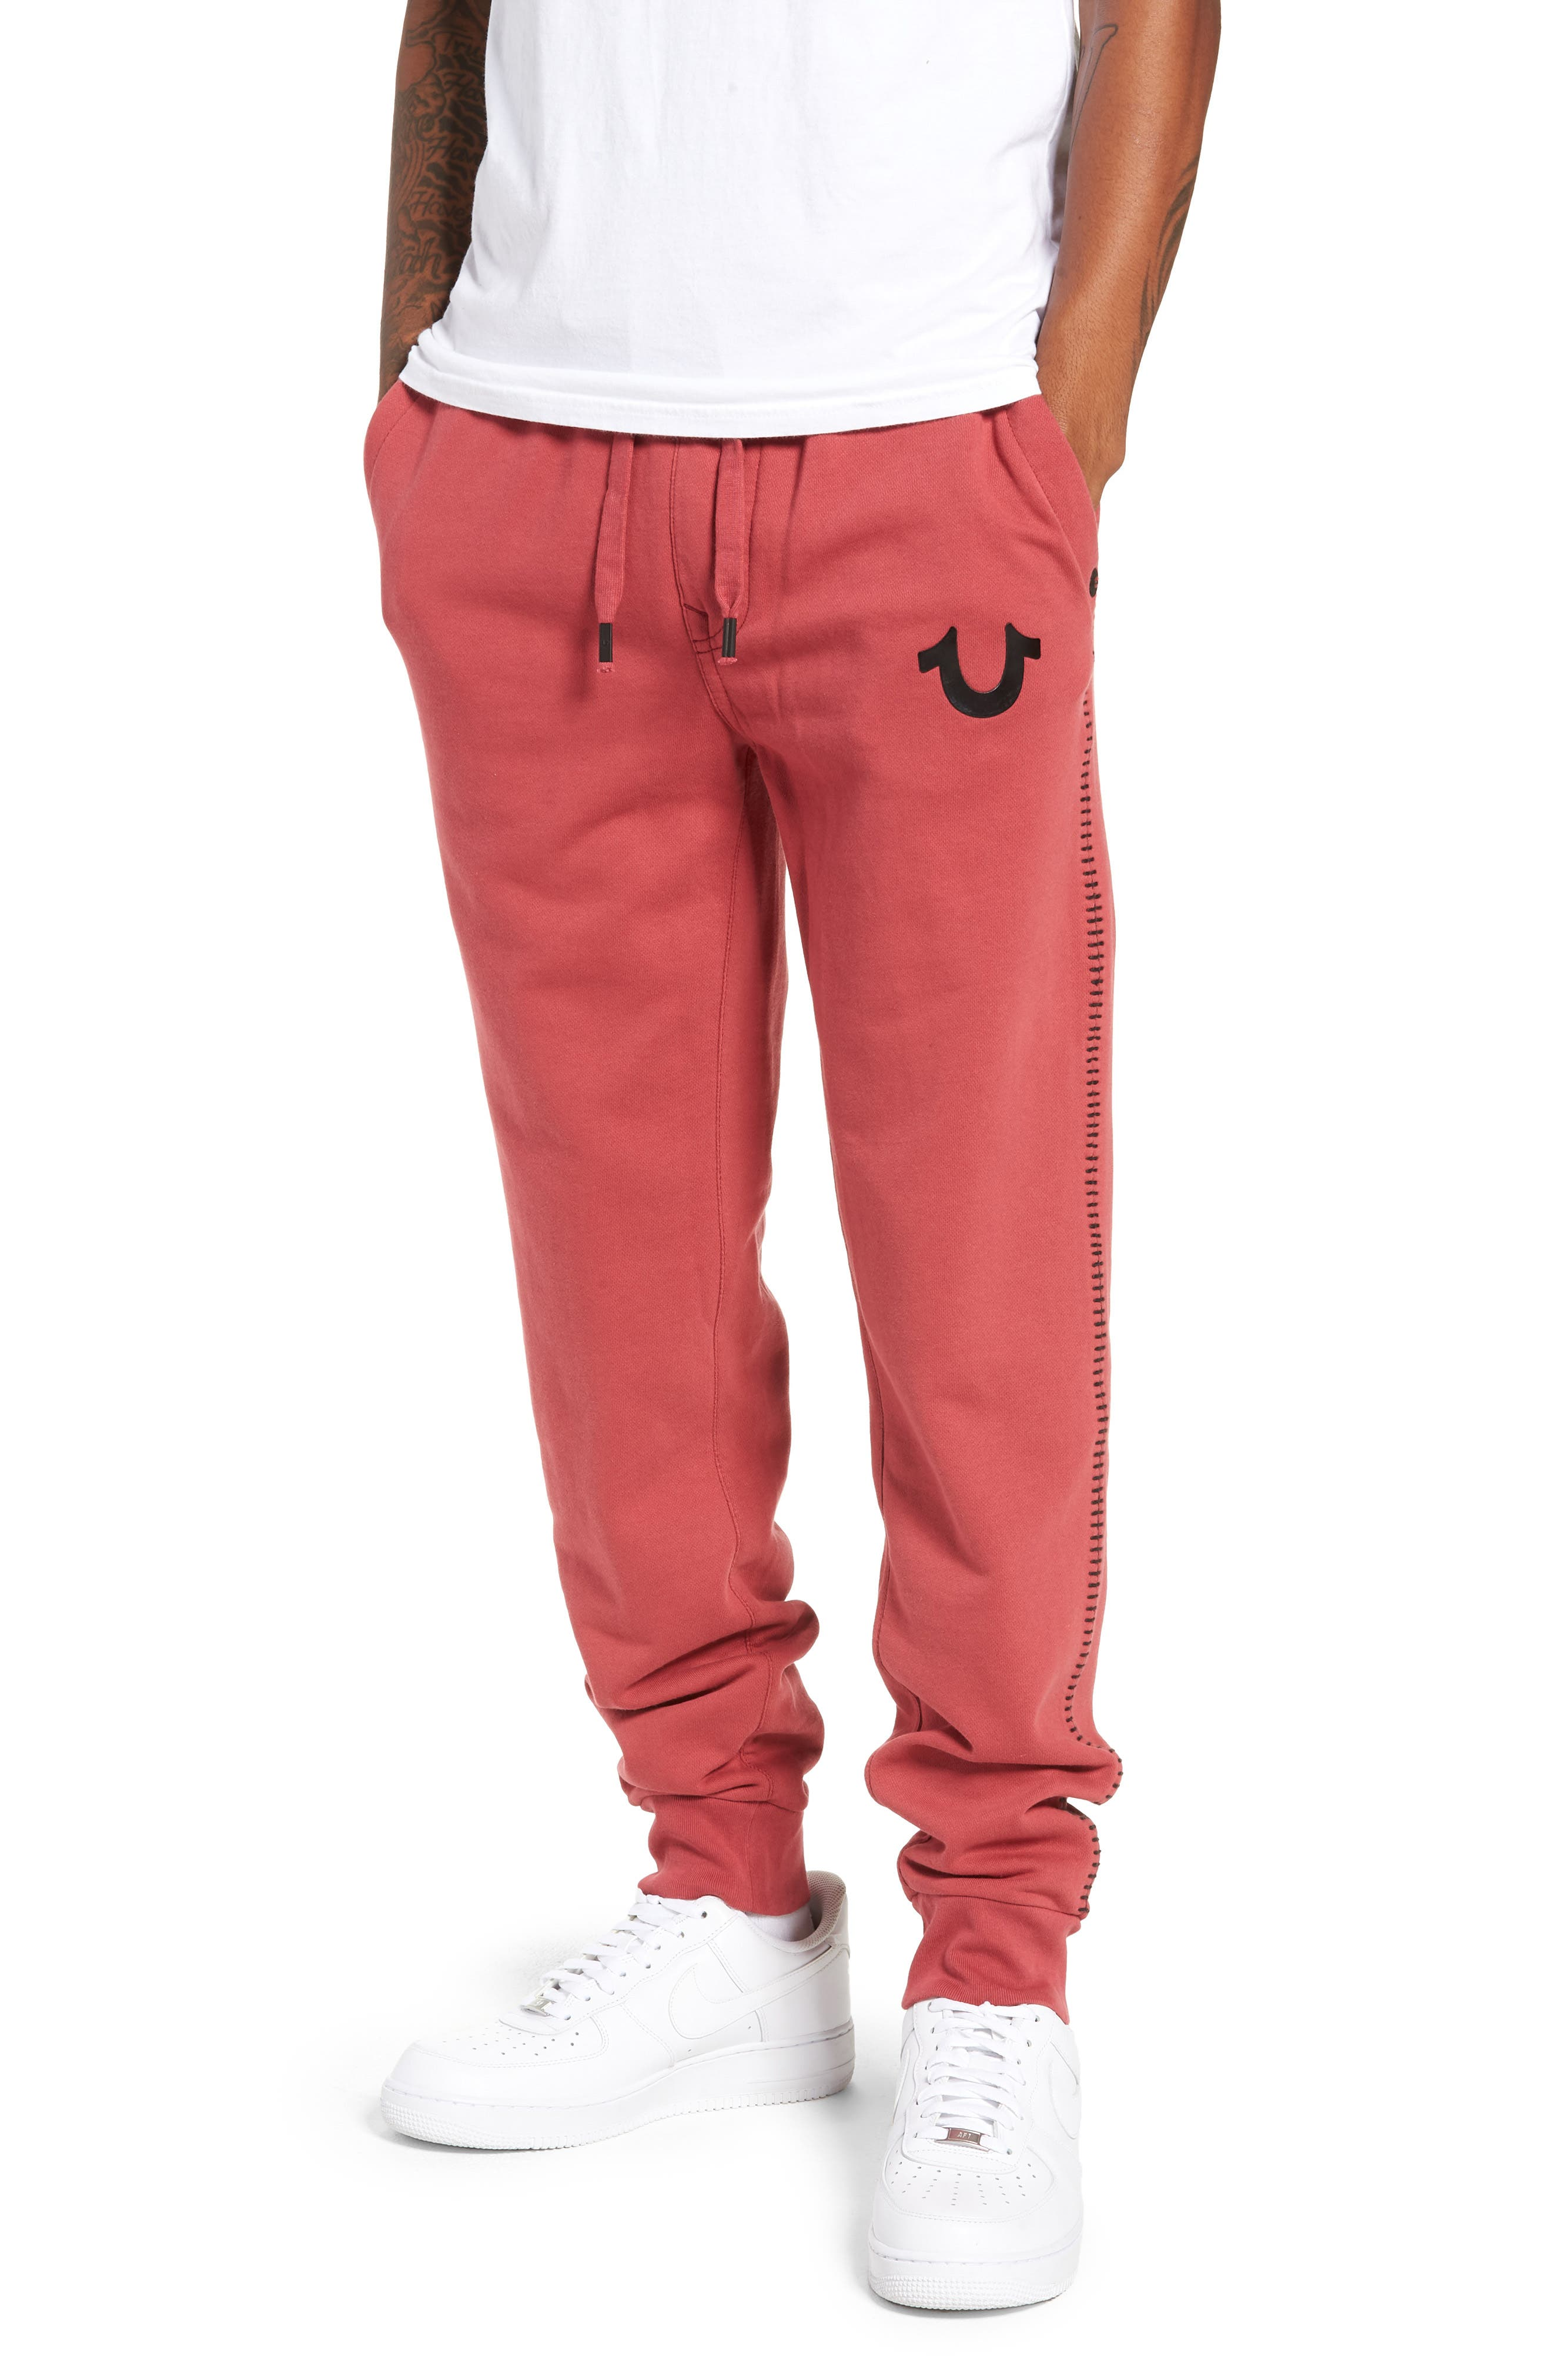 Metallic Buddha Sweatpants,                             Main thumbnail 1, color,                             GOTH RED